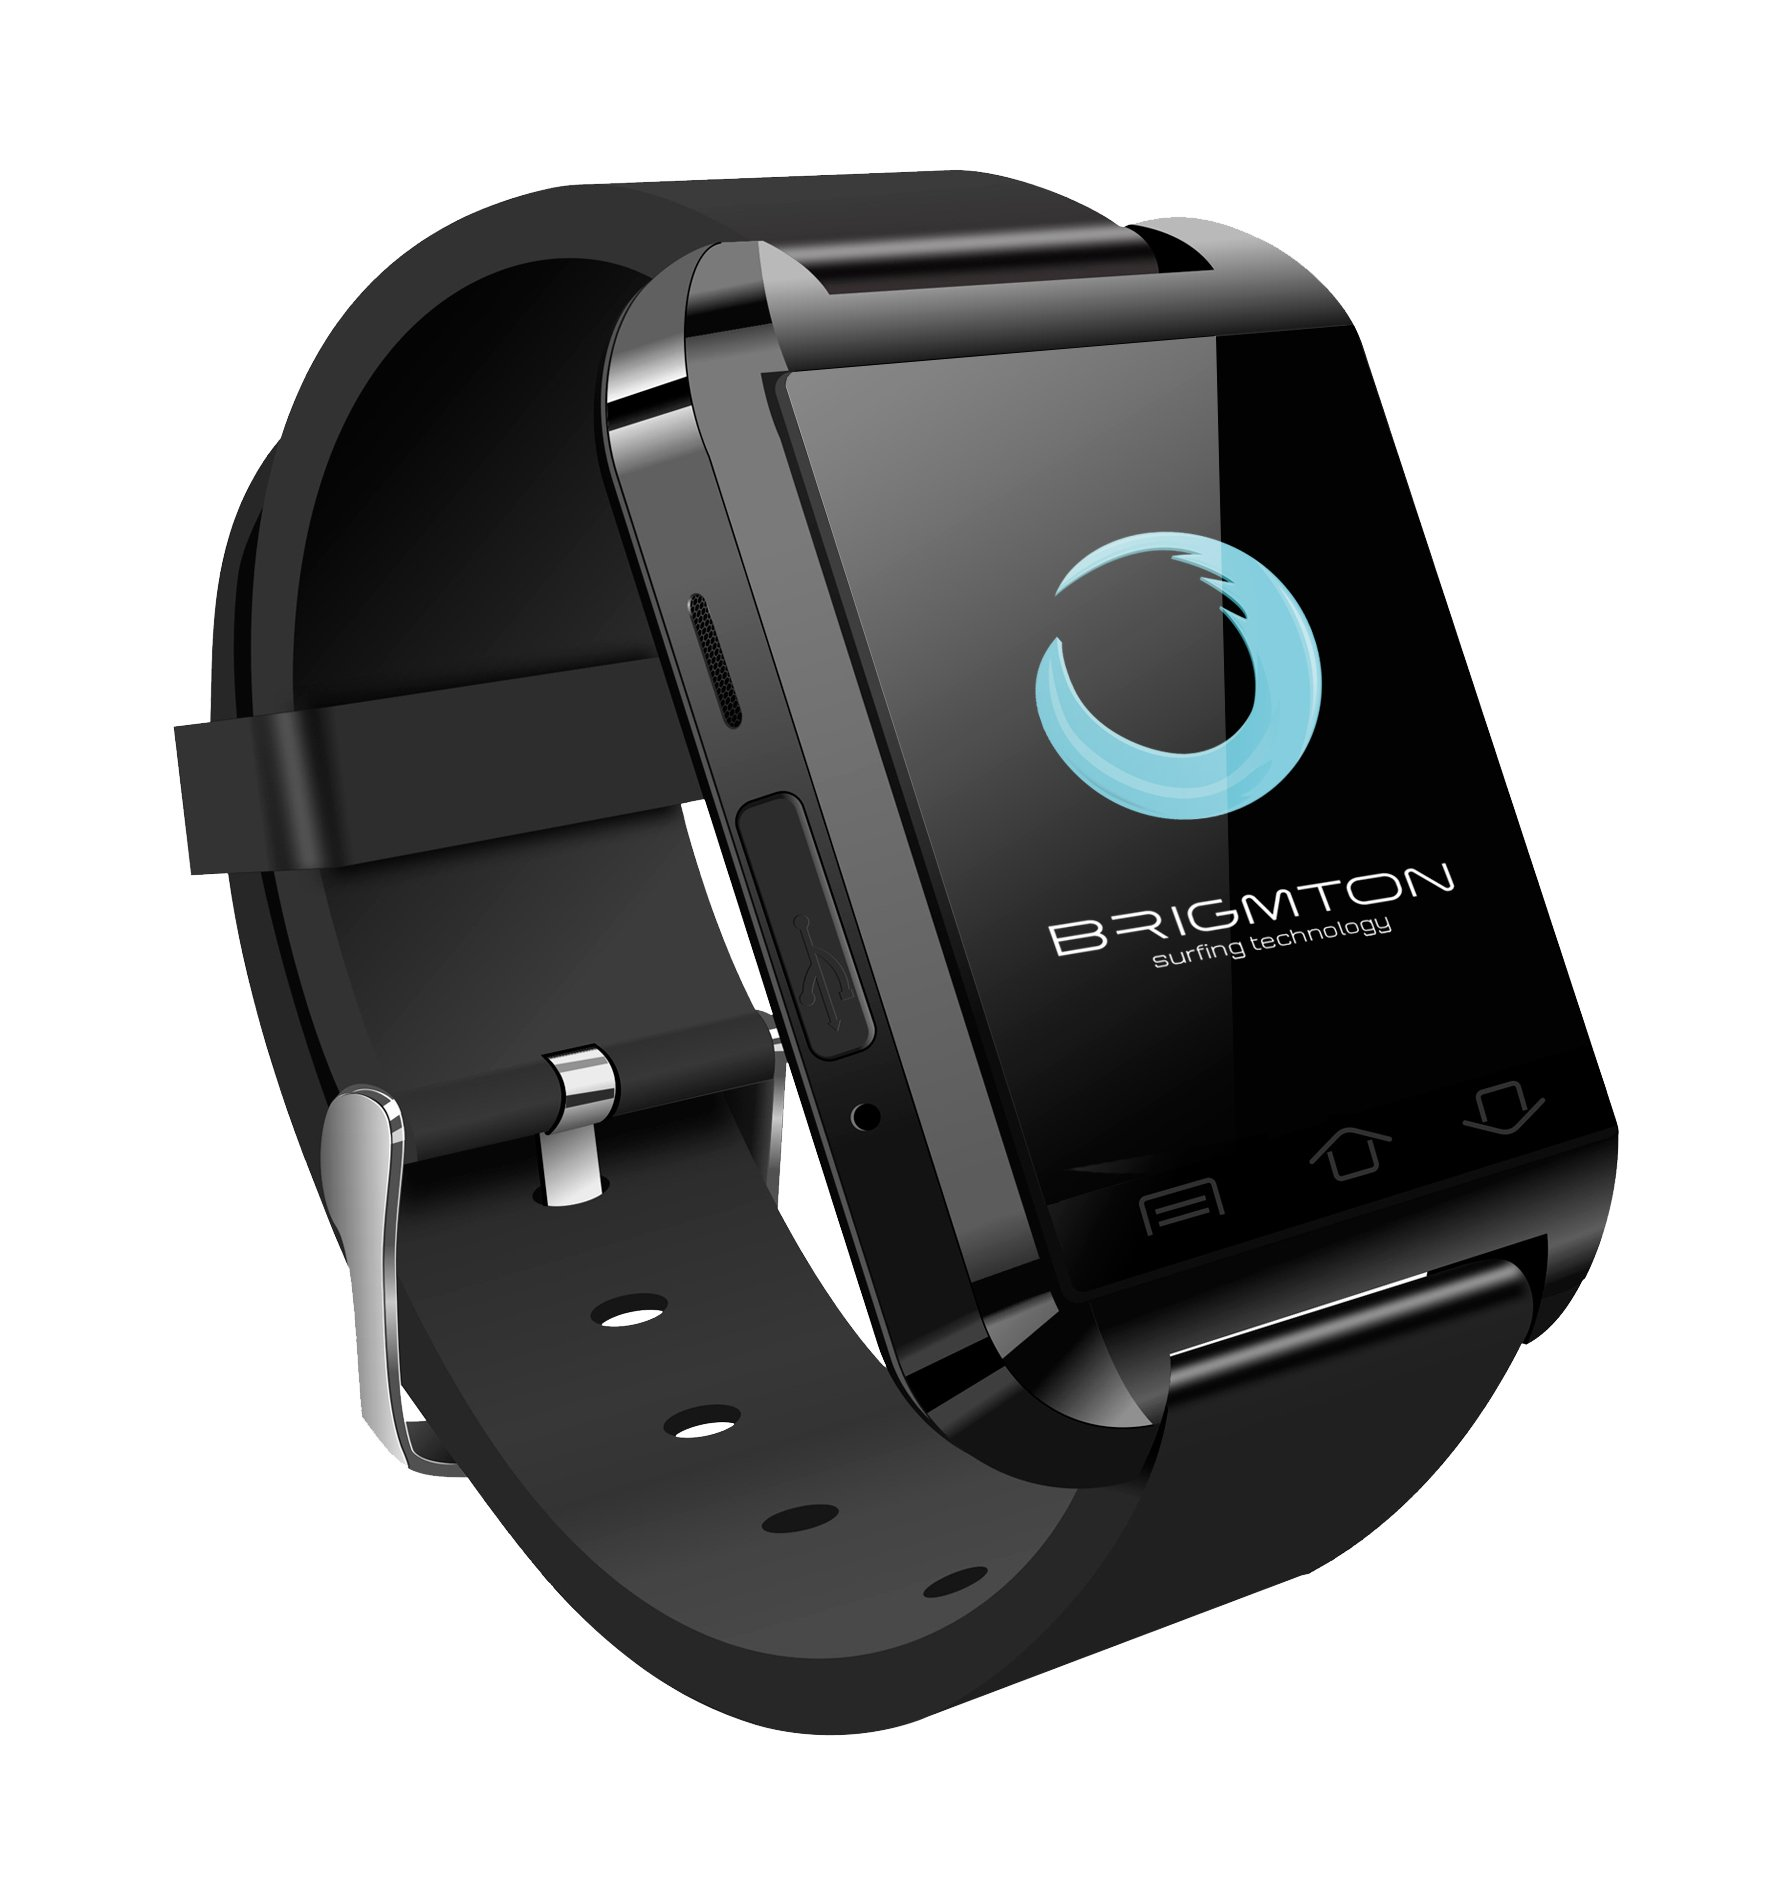 Brigm Tone bWatch BT2 N – Smart watch – 1.44 Inch + 32MB RAM, USB 3.0, USB), Black